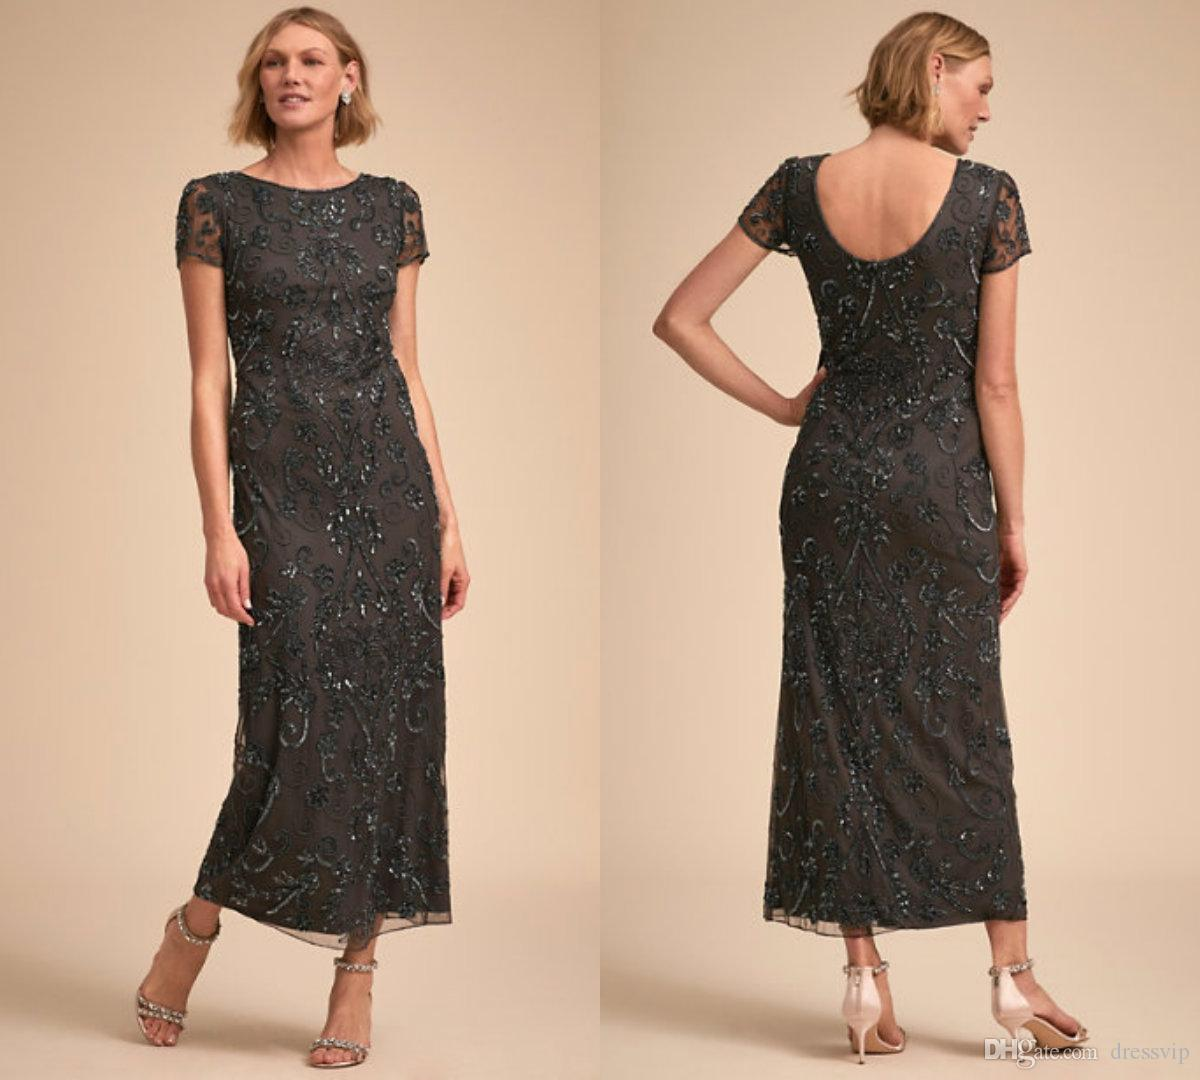 2041ac551d6 2018 BHLDN Mother Of The Bride Dresses Jewel Neck Lace Applique Knee Length  Short Sleeve Elegant Mother S Gowns Prom Party Wear Beaded Joan Rivers ...